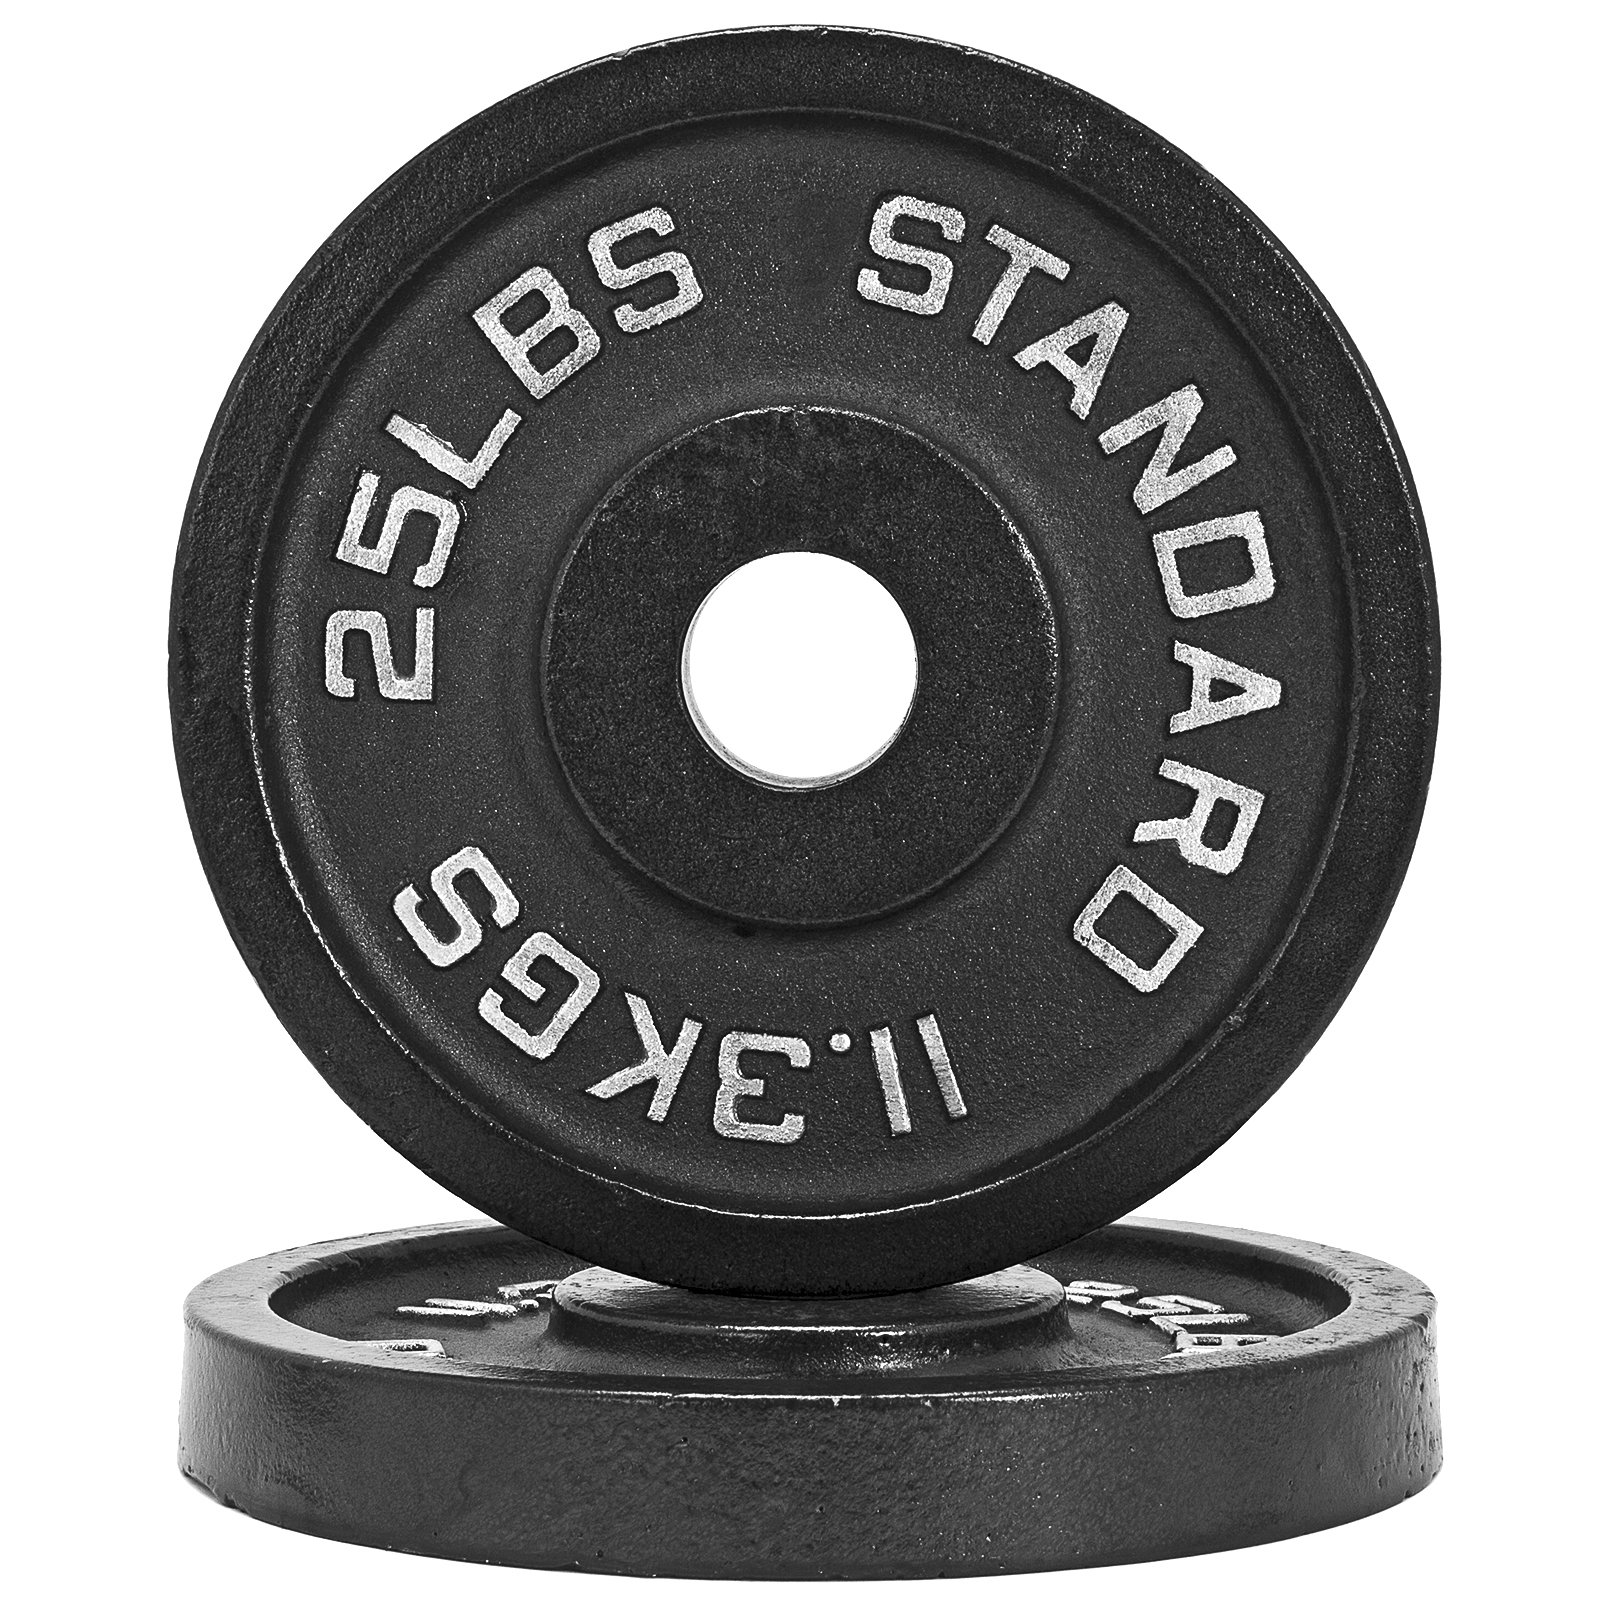 Fringe Sport 1.25lb - 45lb Iron Weight Plate Pairs/Weightlifting, Powerlifting, Other Strength Training Equipment (25)